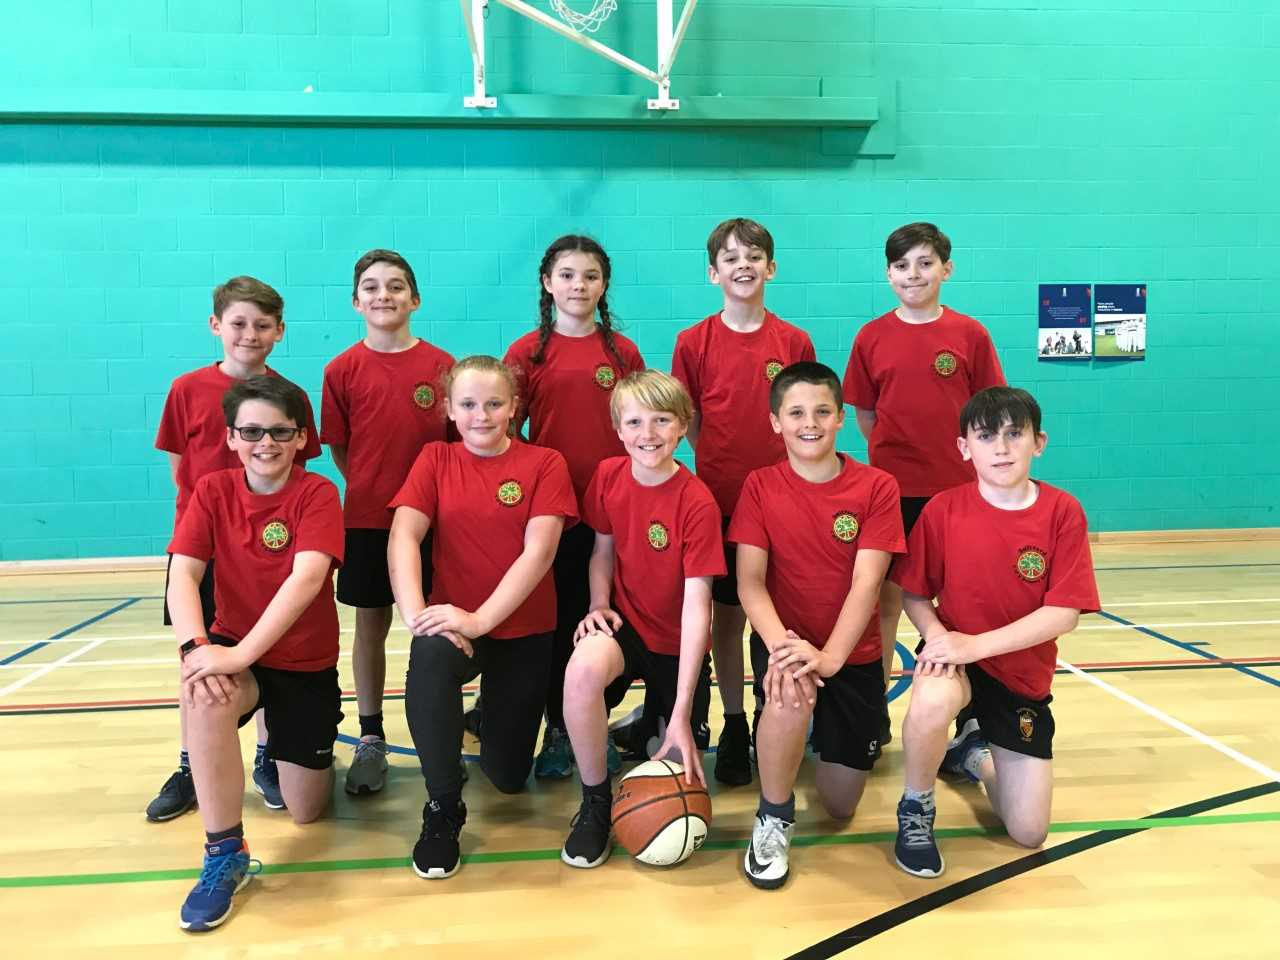 Saltford school basketball team